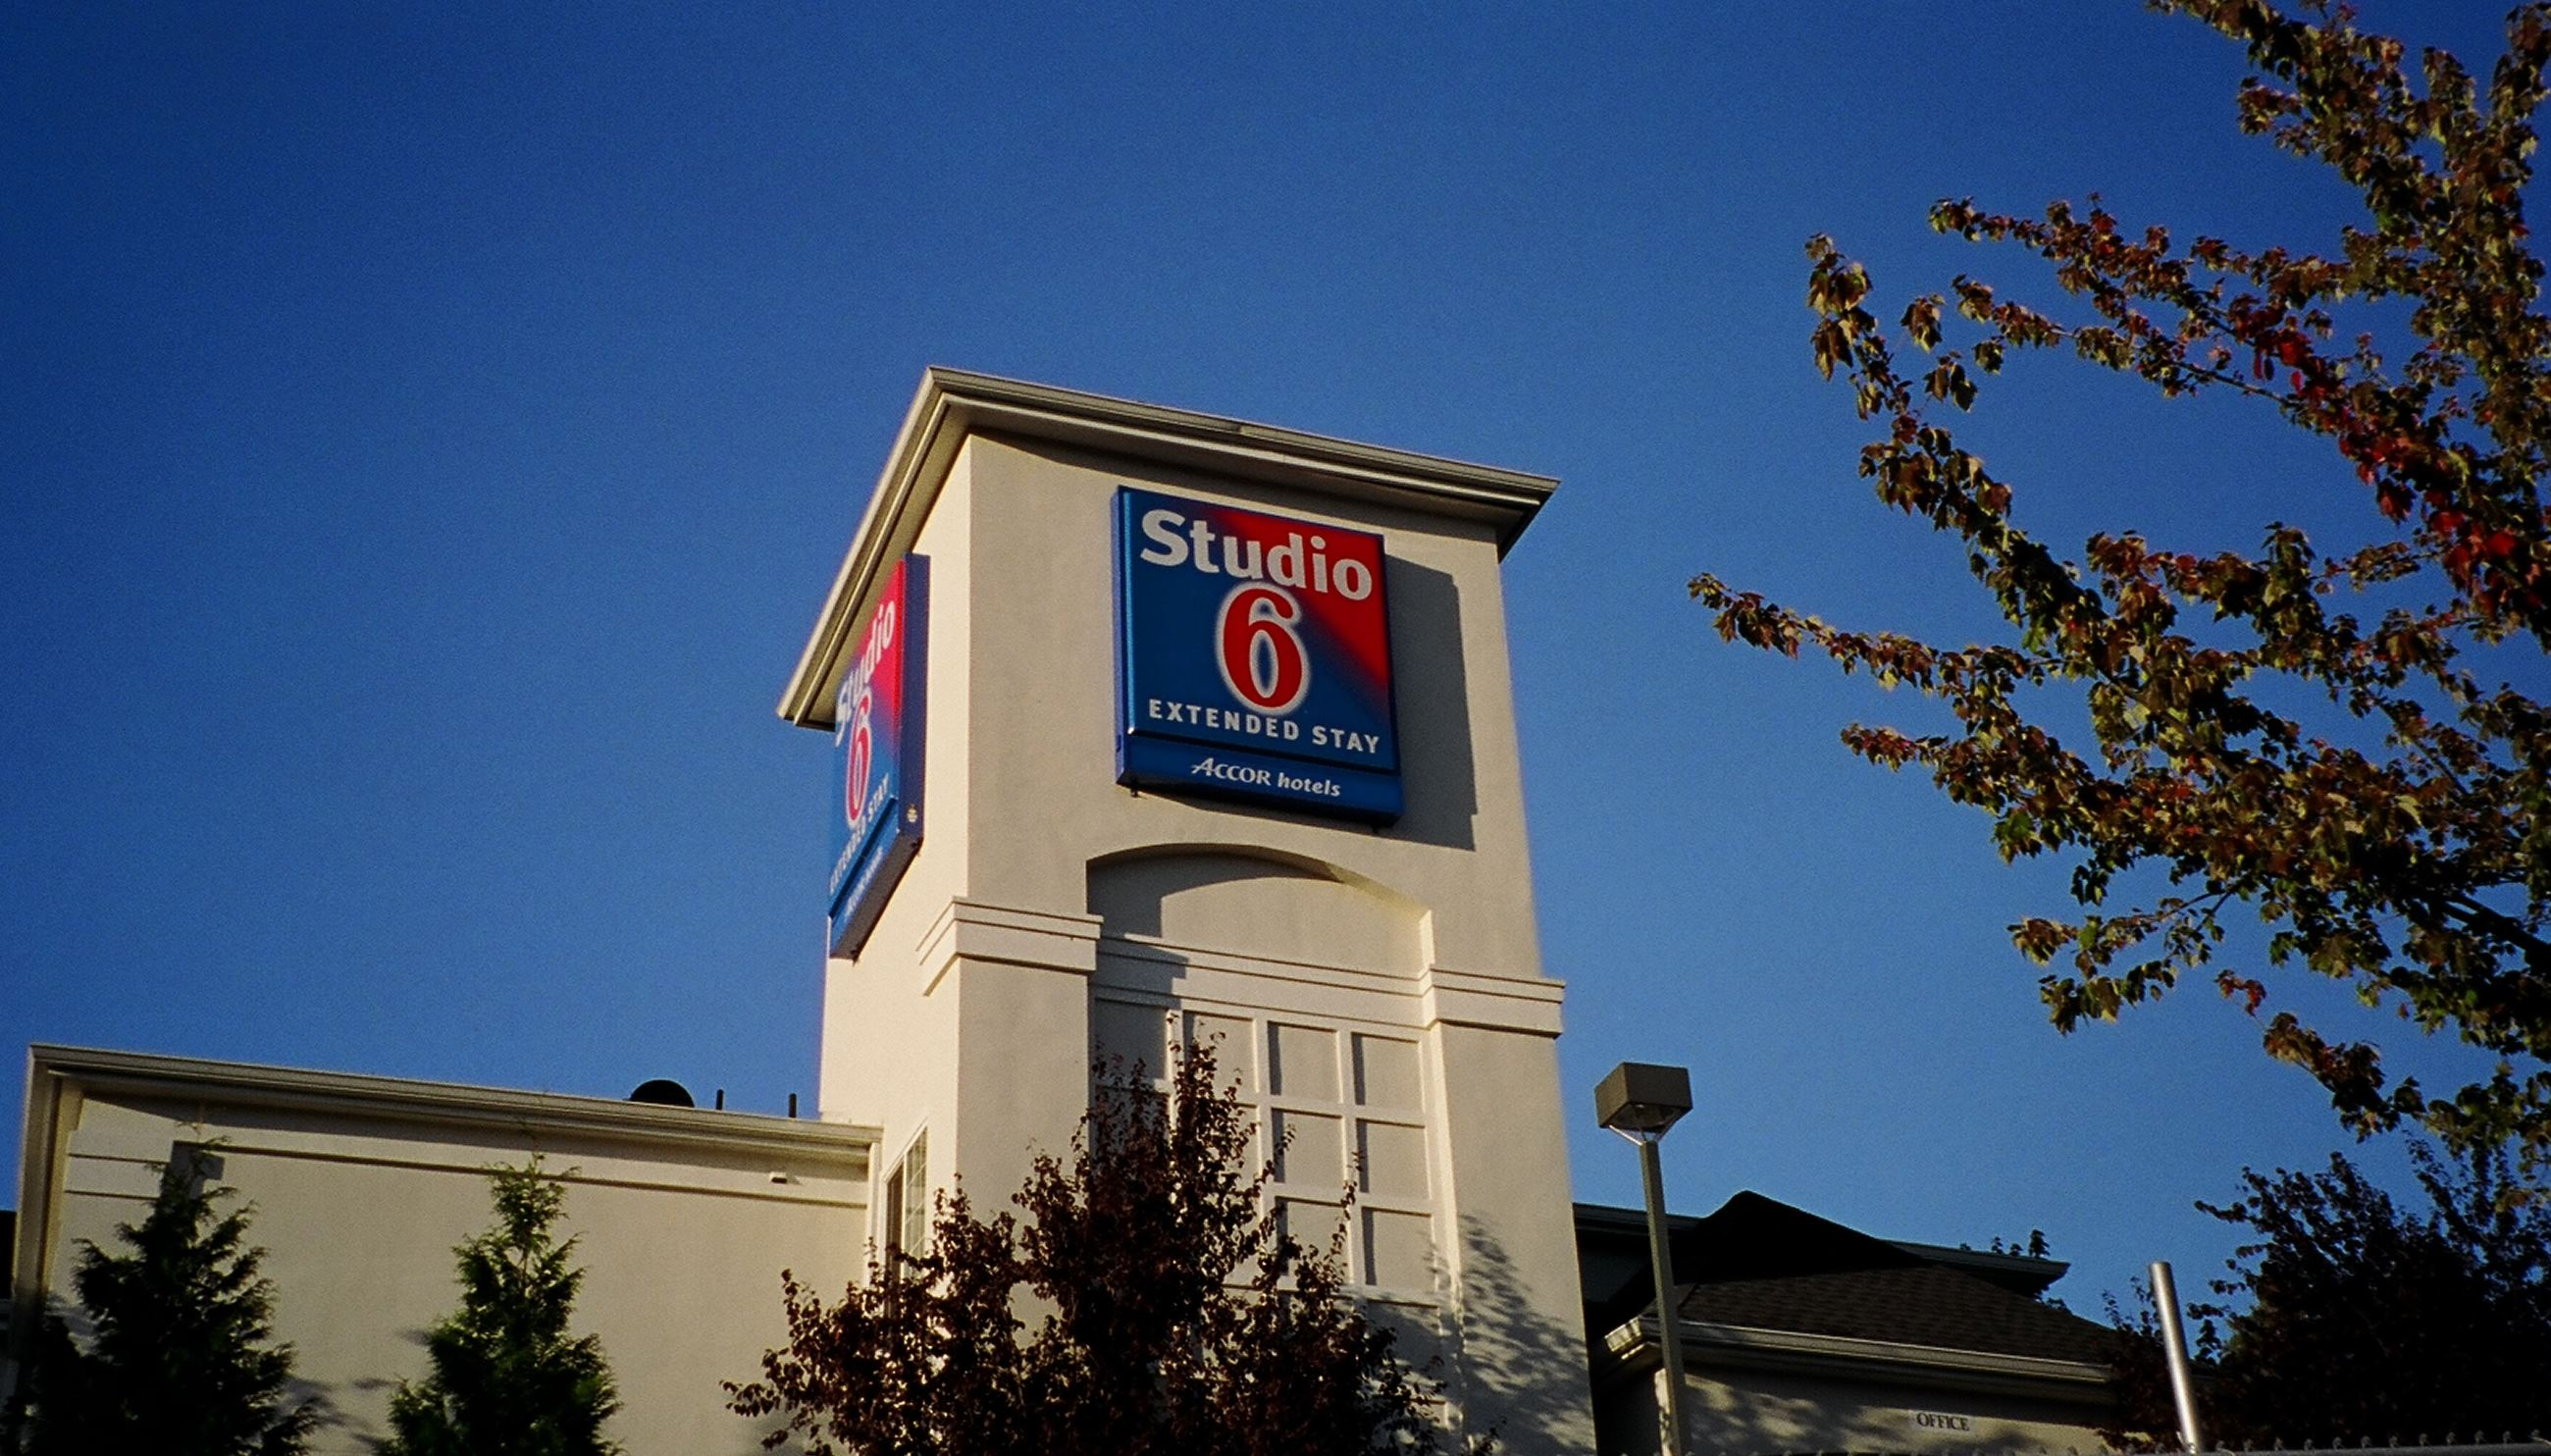 Studio 6 Hotel - Mountlake Terrace